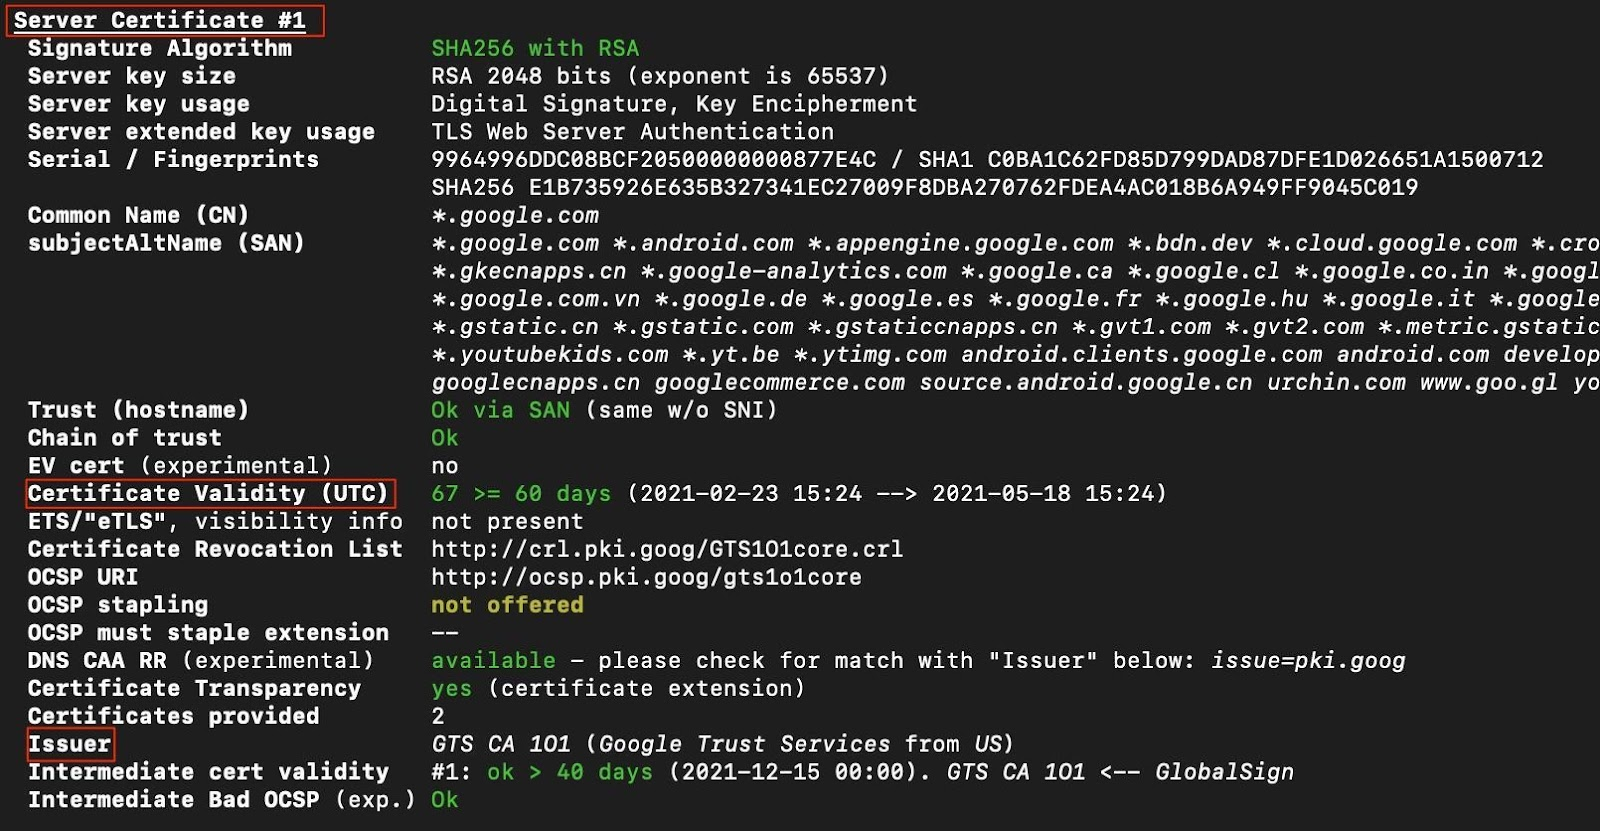 Testssl.sh tool showing the certificates validity and issuer in this screenshot by white oak security.